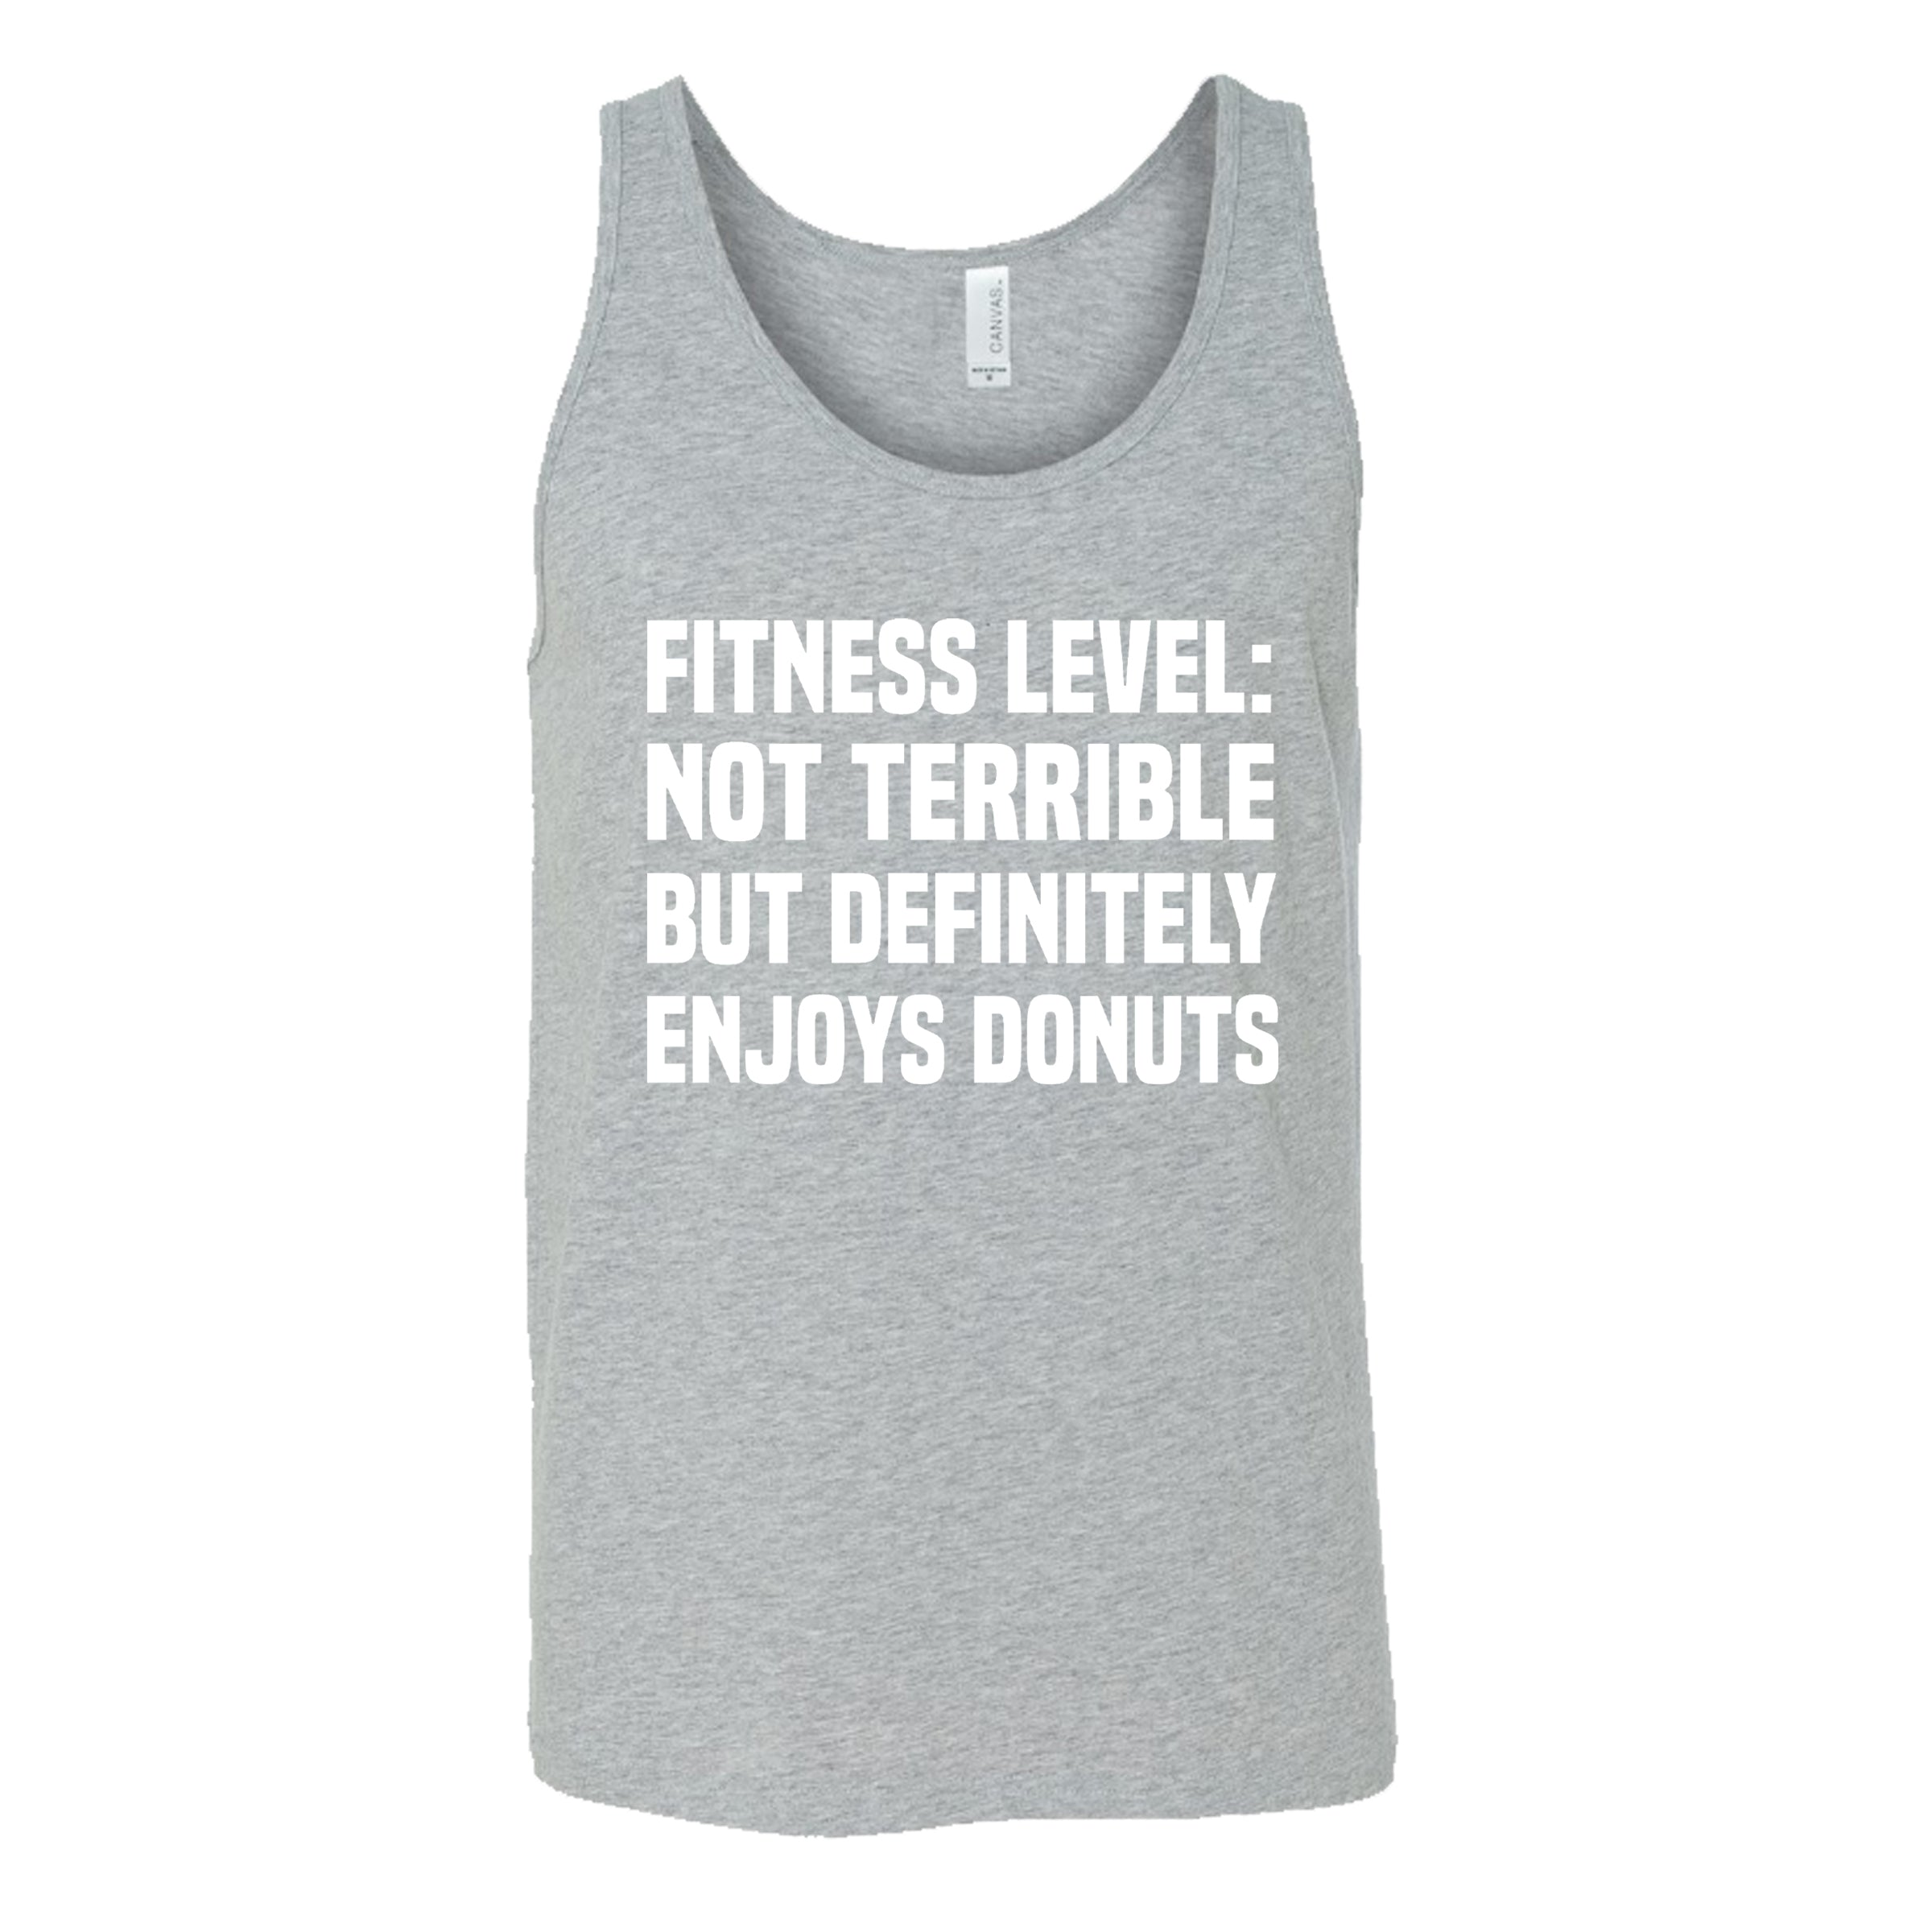 Fitness Level Not Terrible But Definitely Enjoys Donuts Shirt Mens